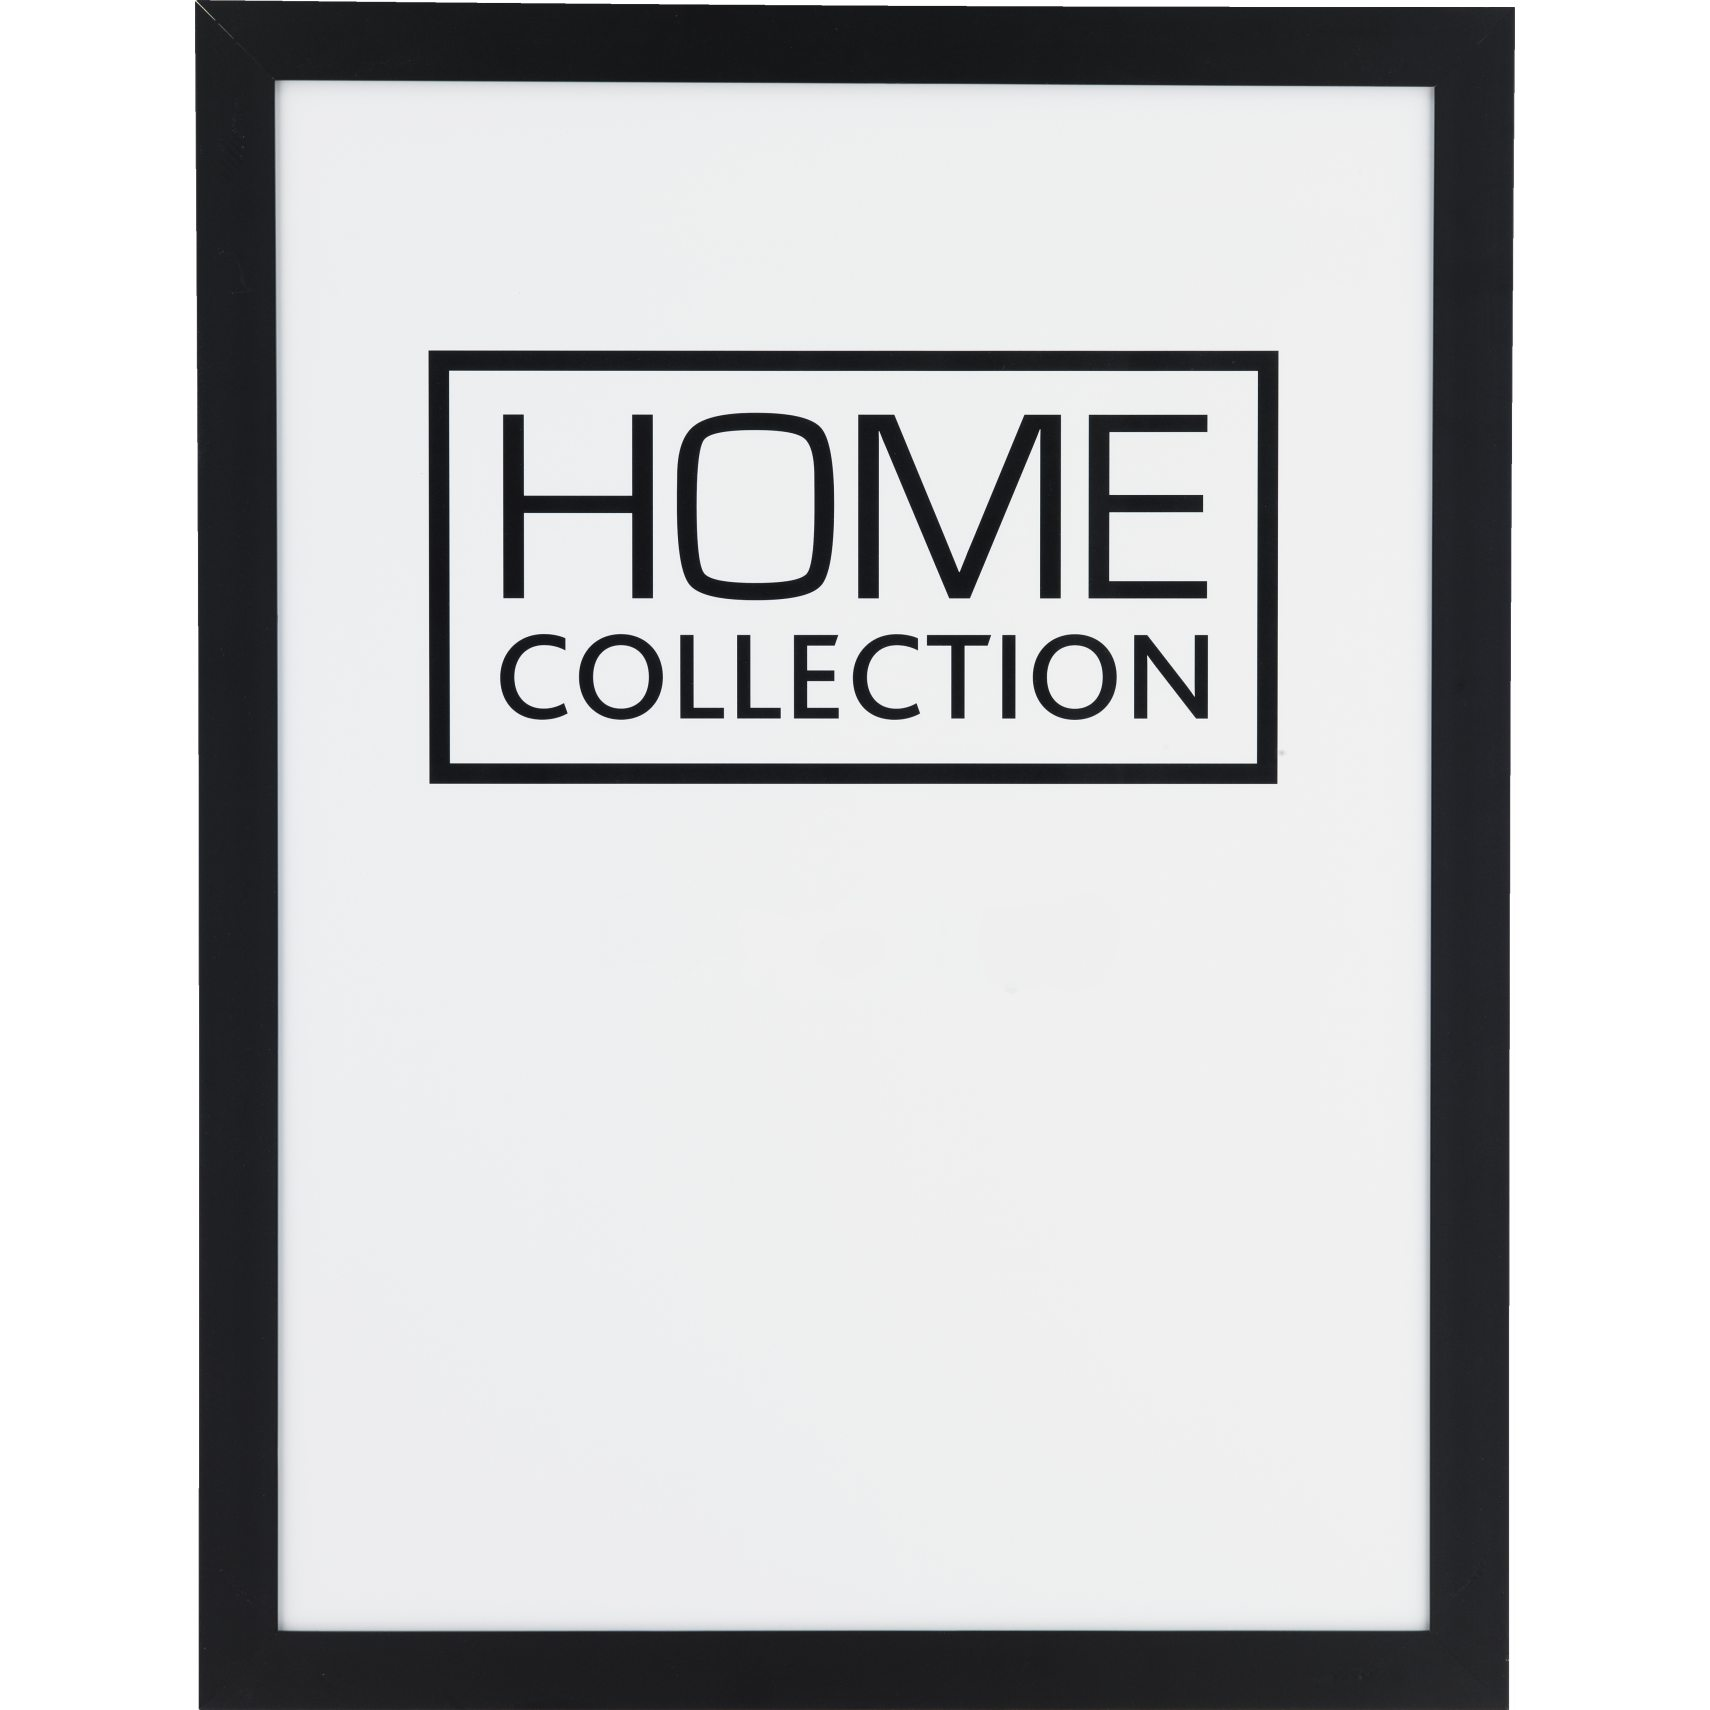 Homecollection Ramme - Sort træramme